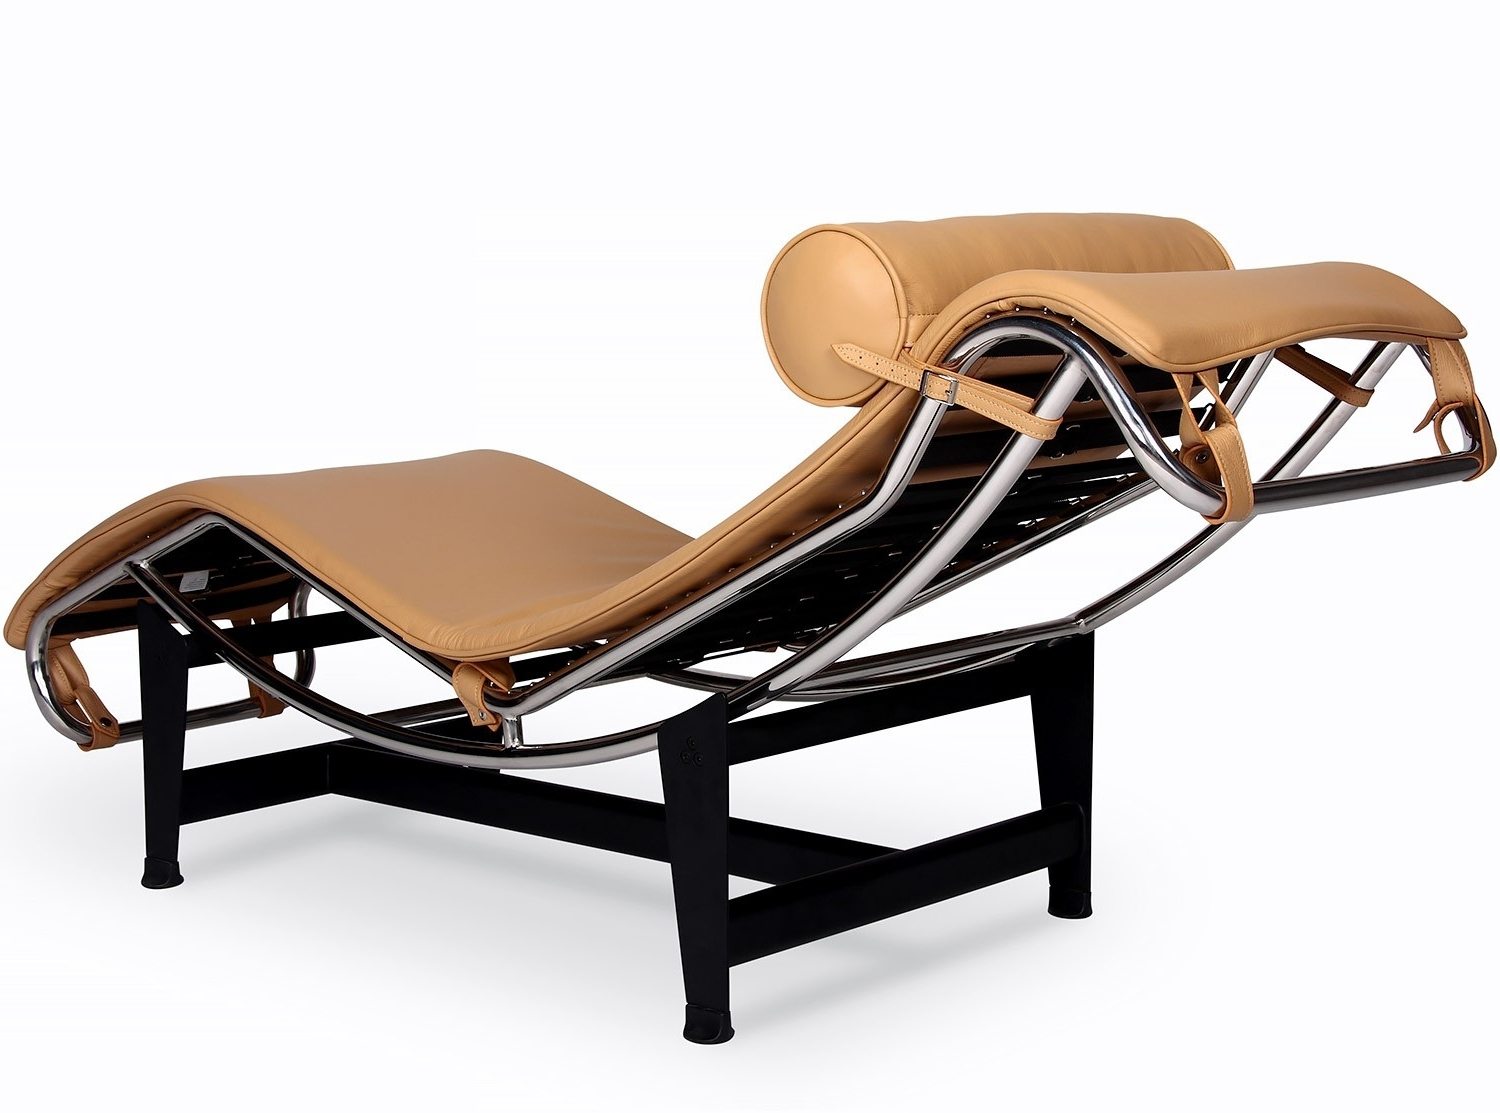 Well Known Lc4 Chaise Lounges Intended For Le Corbusier Lc4 Chaise Longue (Platinum Replica) (View 15 of 15)